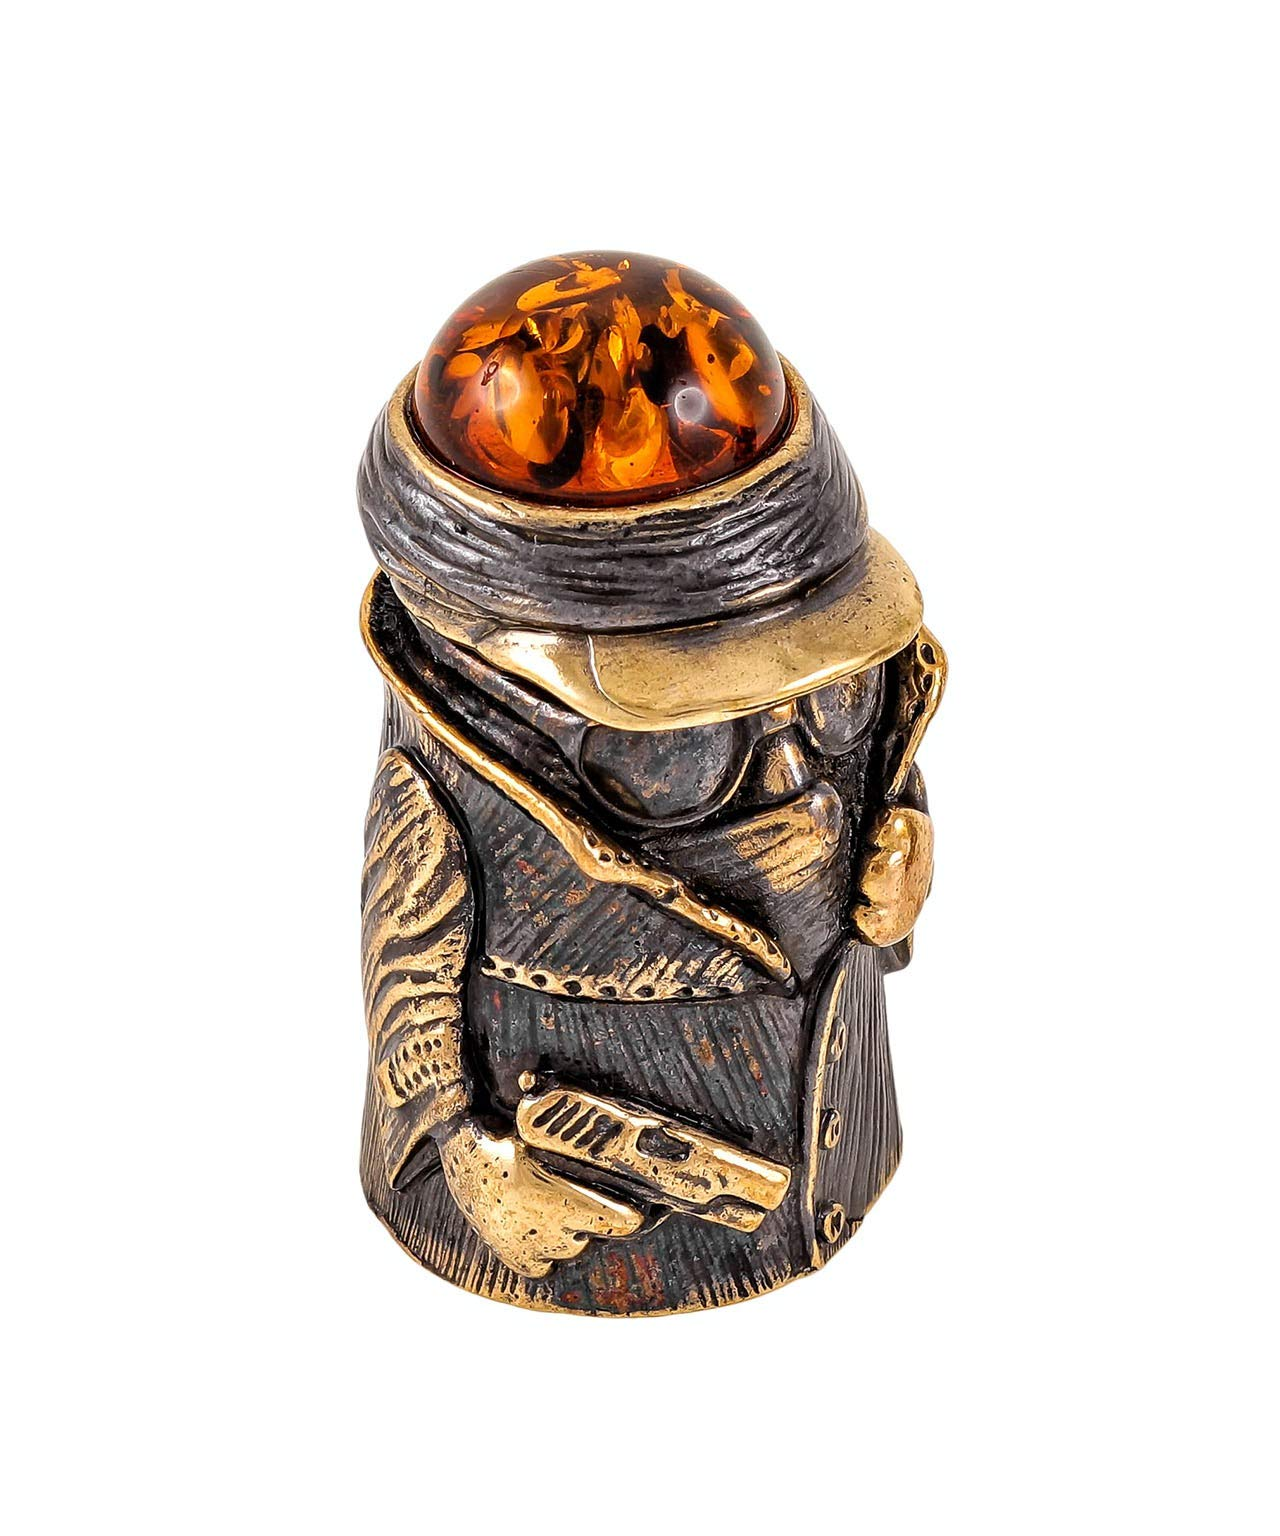 Amber and Brass Thimble (Gangster) Decorative Souvenir Thimbles. Antique and Vintage Designs from Kaliningrad, Russia. Packed in a Beautiful Siberian Birch Bark Gift Box (Random Selection) by Brass and Amber Art